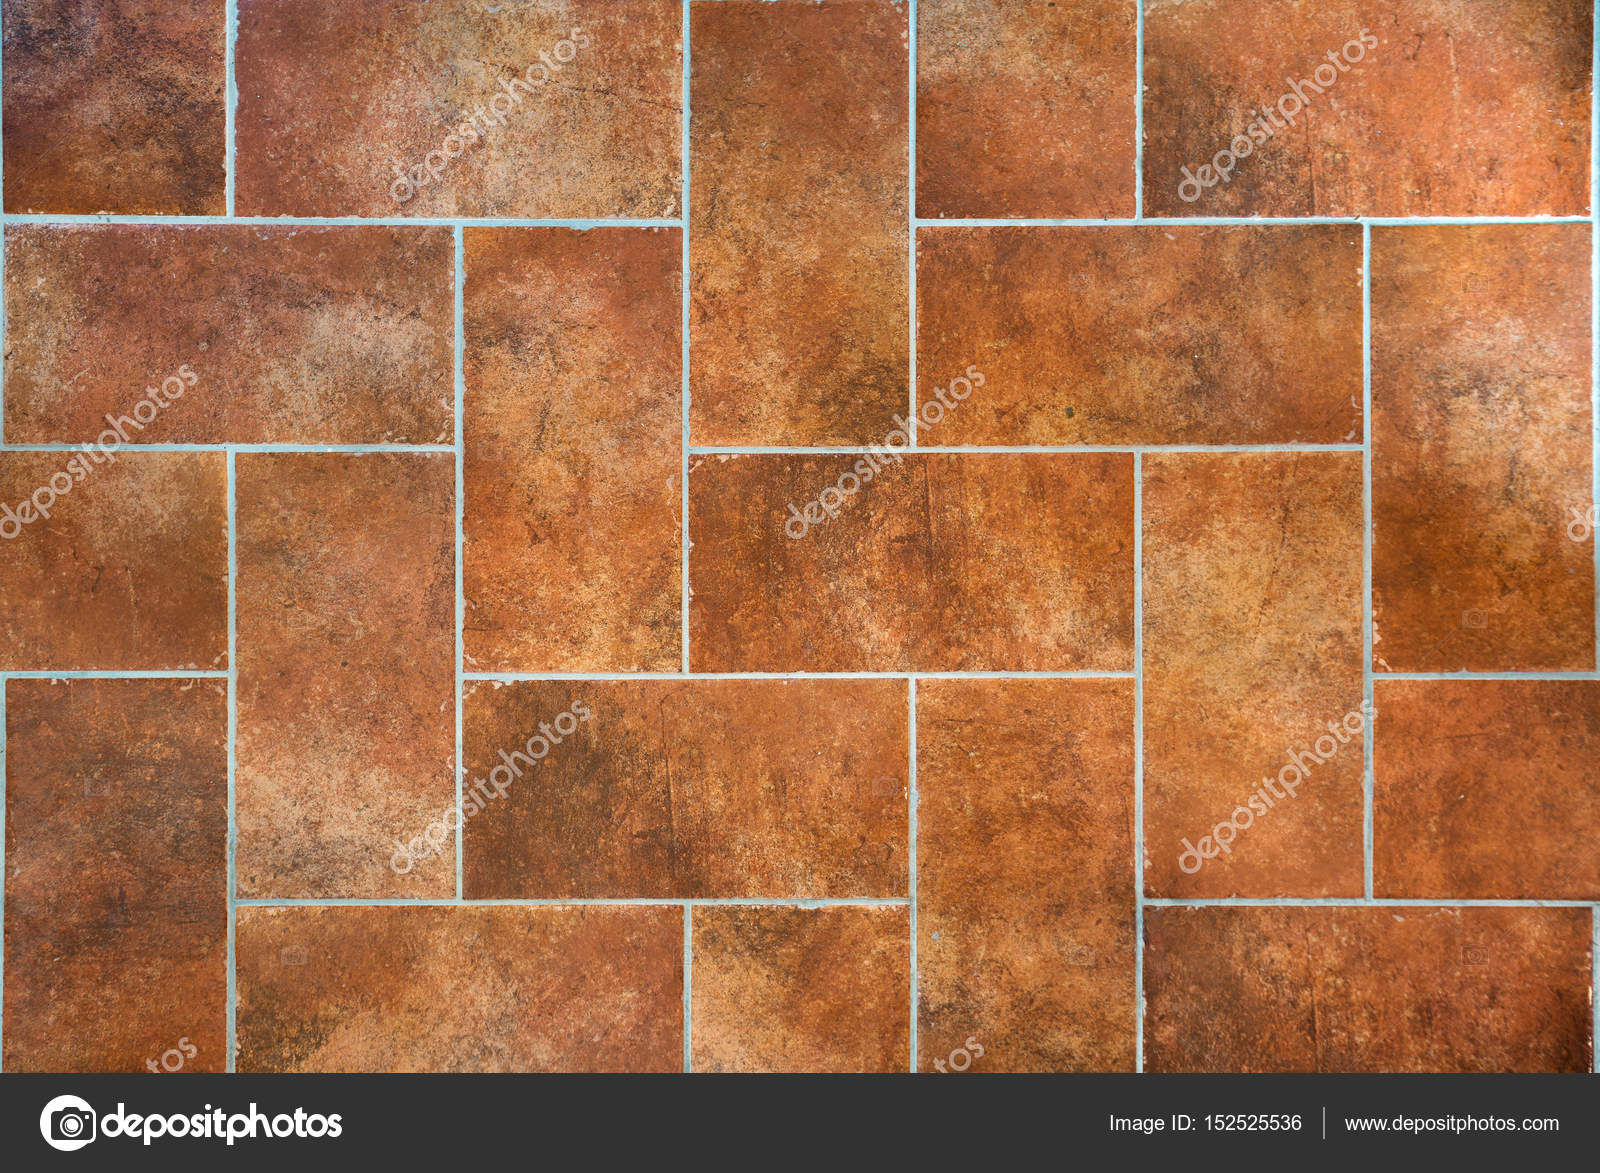 Tuscan traditional old grunge floor red ceramic stoneware tiles tuscan traditional old grunge floor red ceramic stoneware tiles stock photo dailygadgetfo Gallery